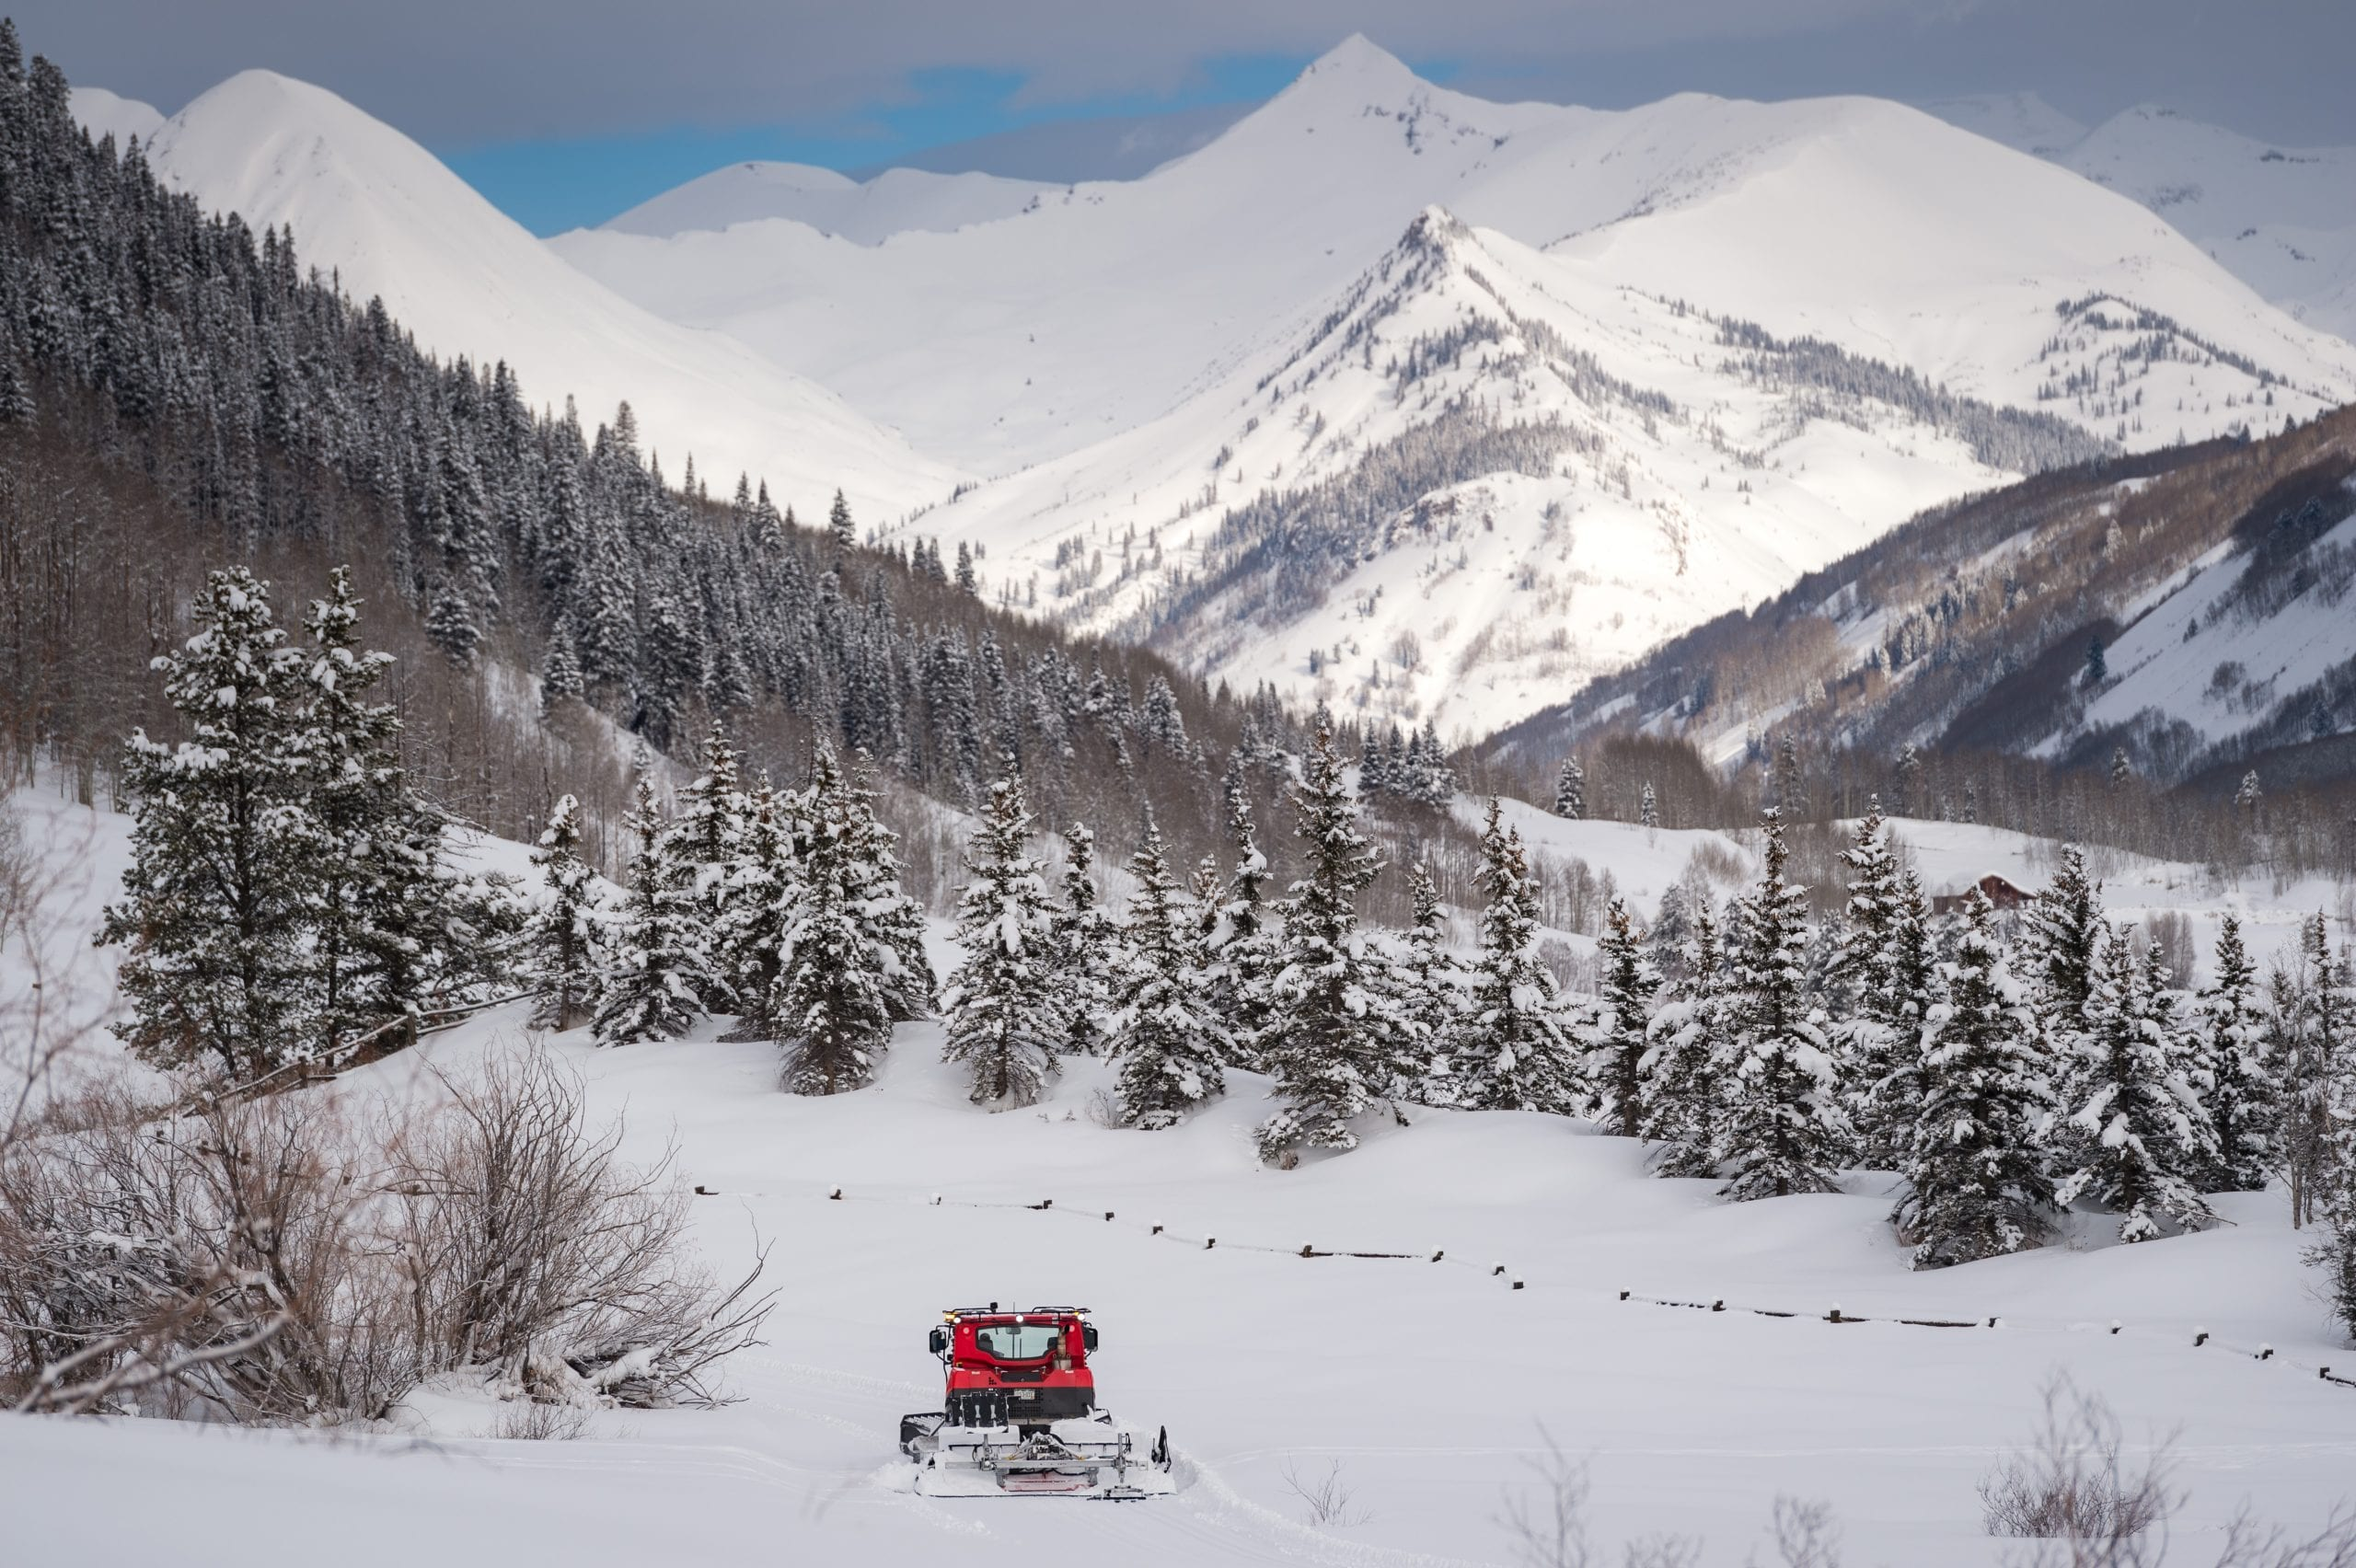 Snow cat grooming CB Nordic trails with Paradise Divide backdrop